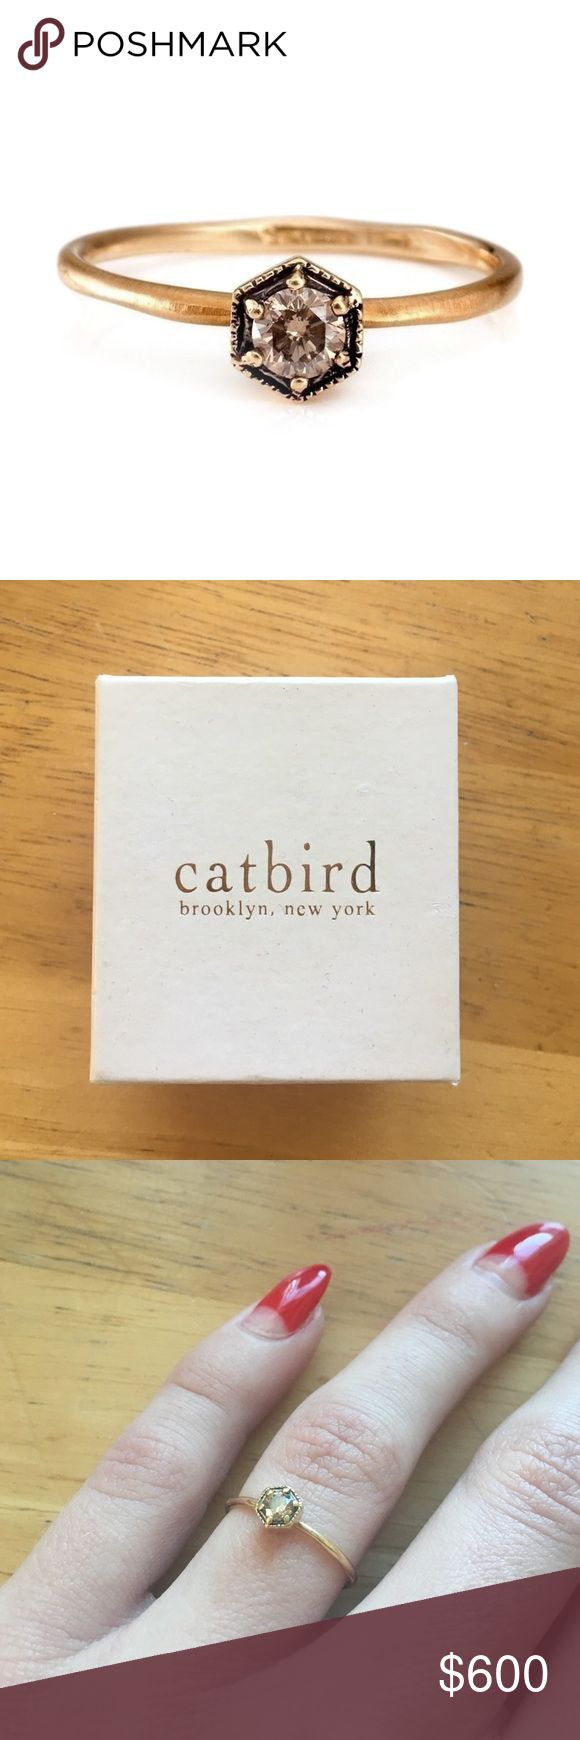 catbird satomi hexagon champagne diamond ring 6.5 catbird satomi kawakita hexagon champagne diamond engagement ring. ring is beautiful, I just got divorced. $800 new. 18k gold, diamond size is .16ct CatbirdNYC Jewelry Rings